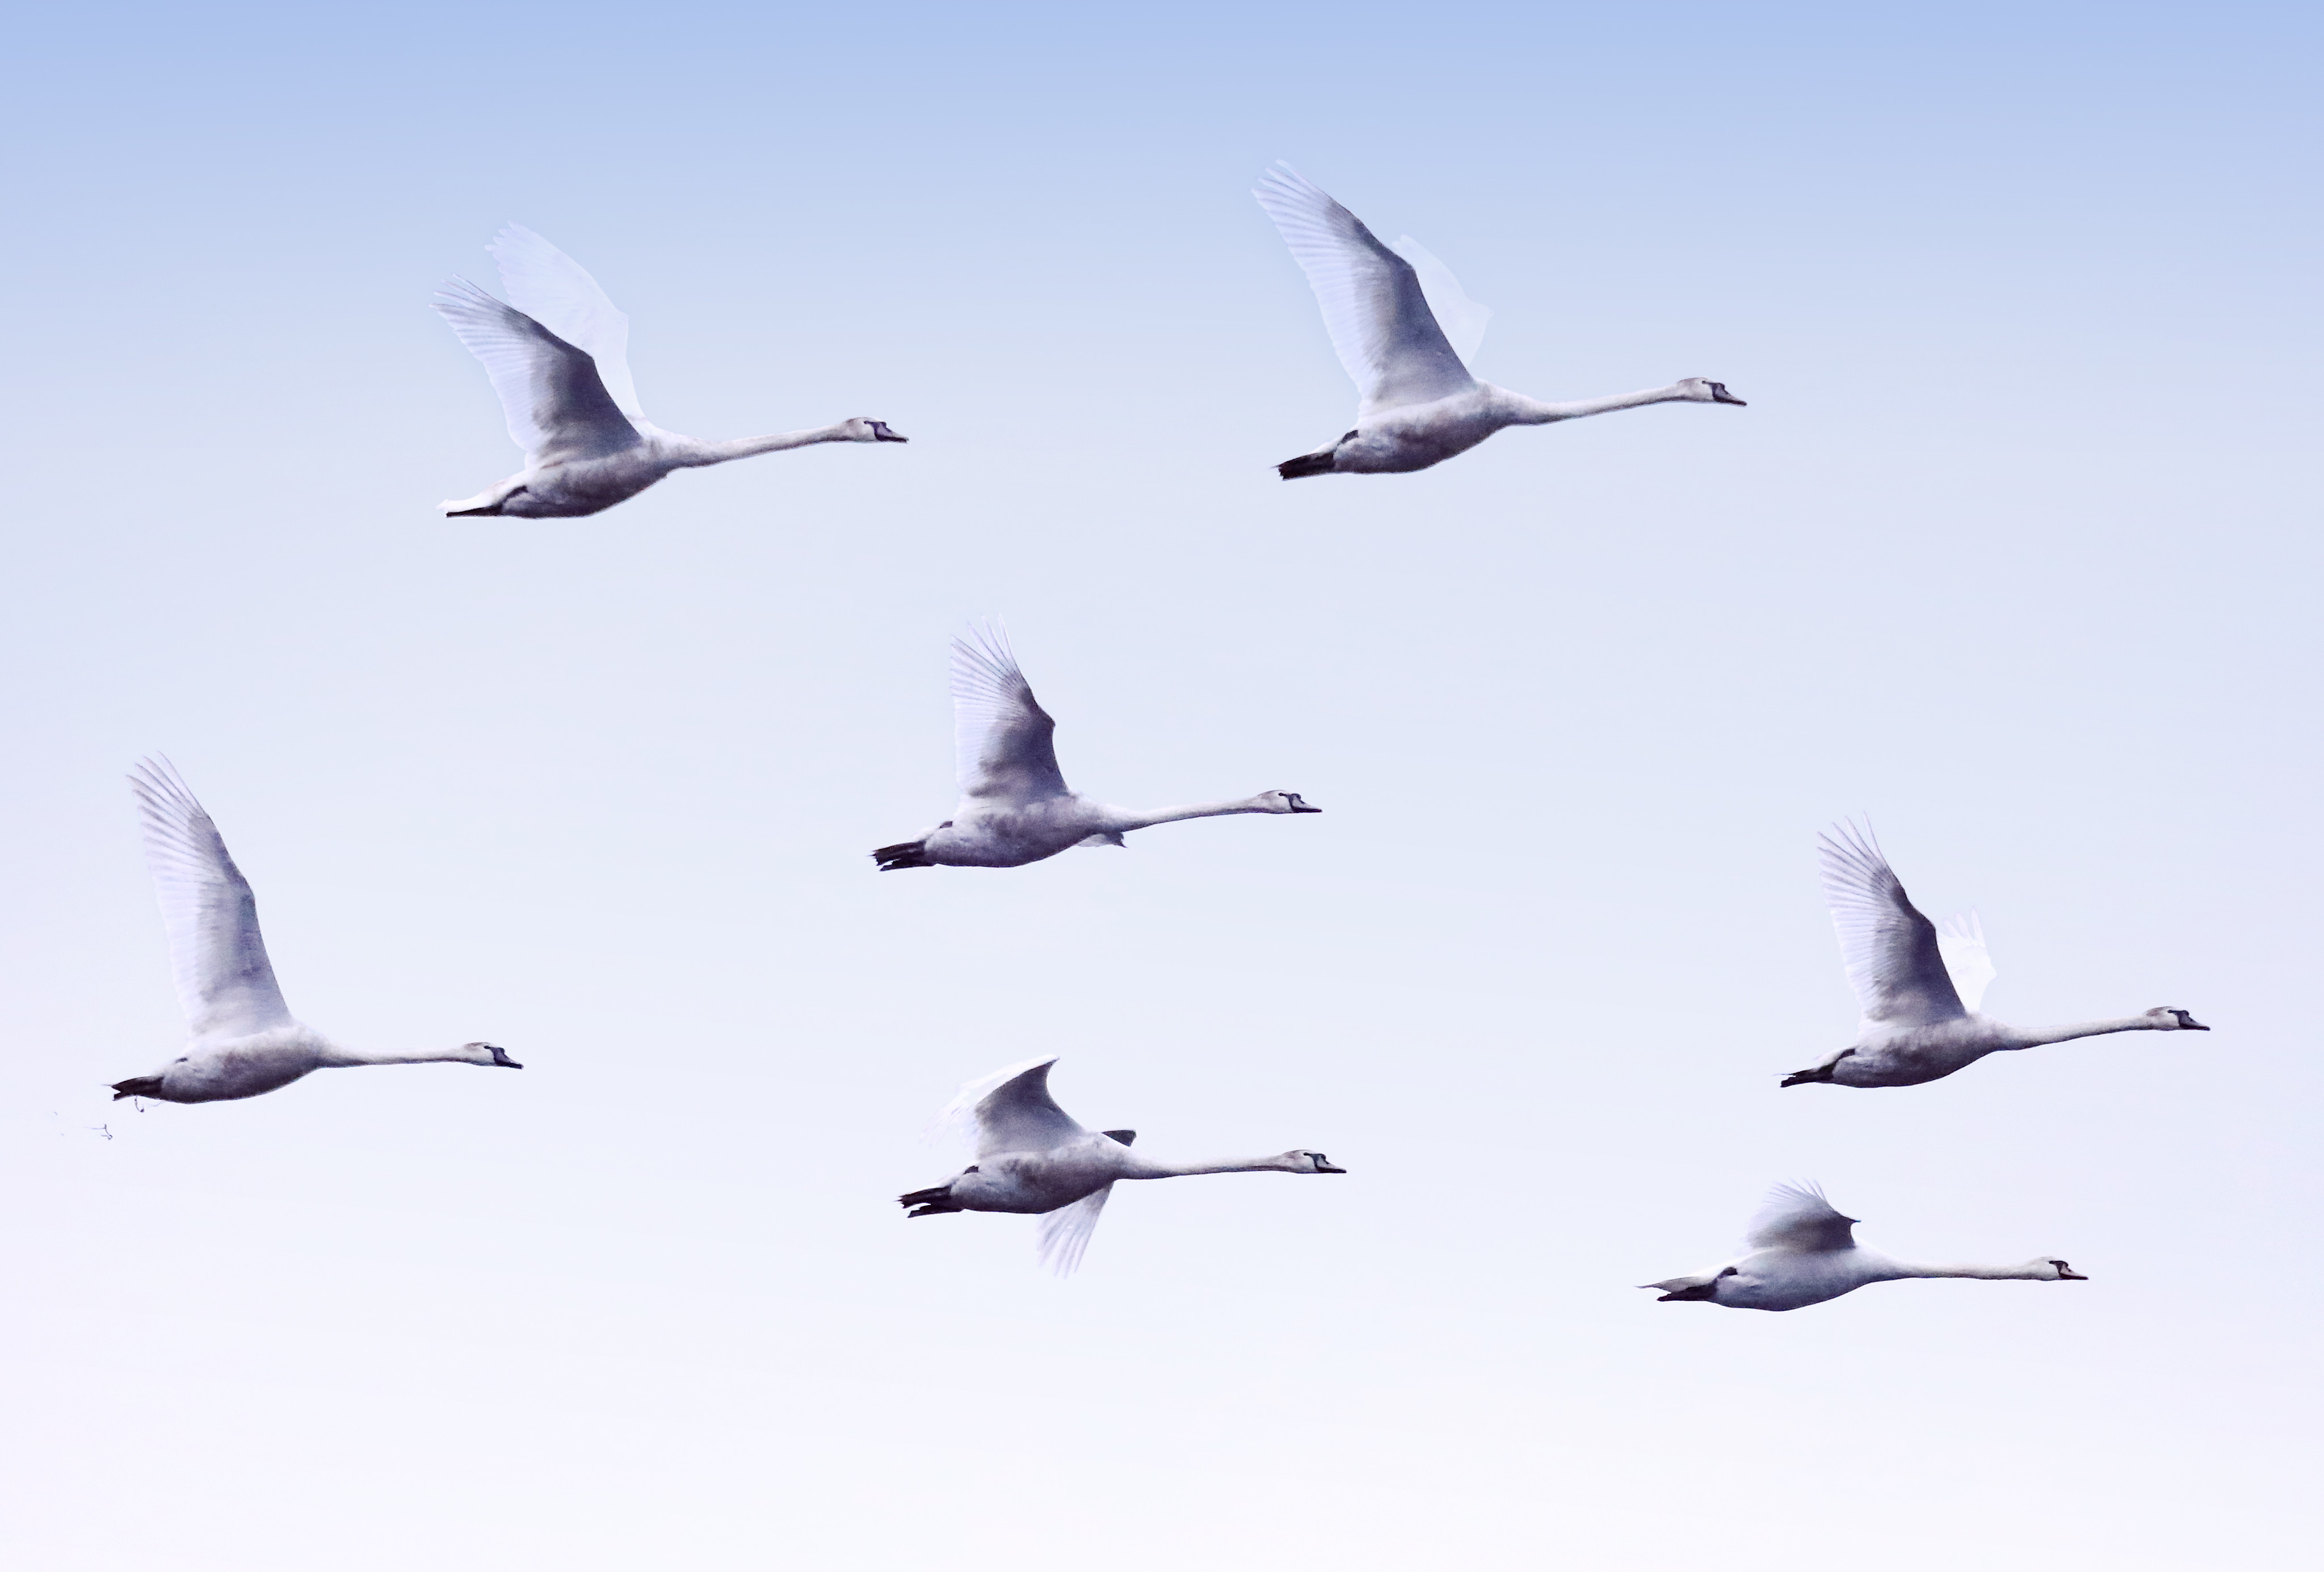 79150 download wallpaper Animals, Swans, Flight, Birds screensavers and pictures for free